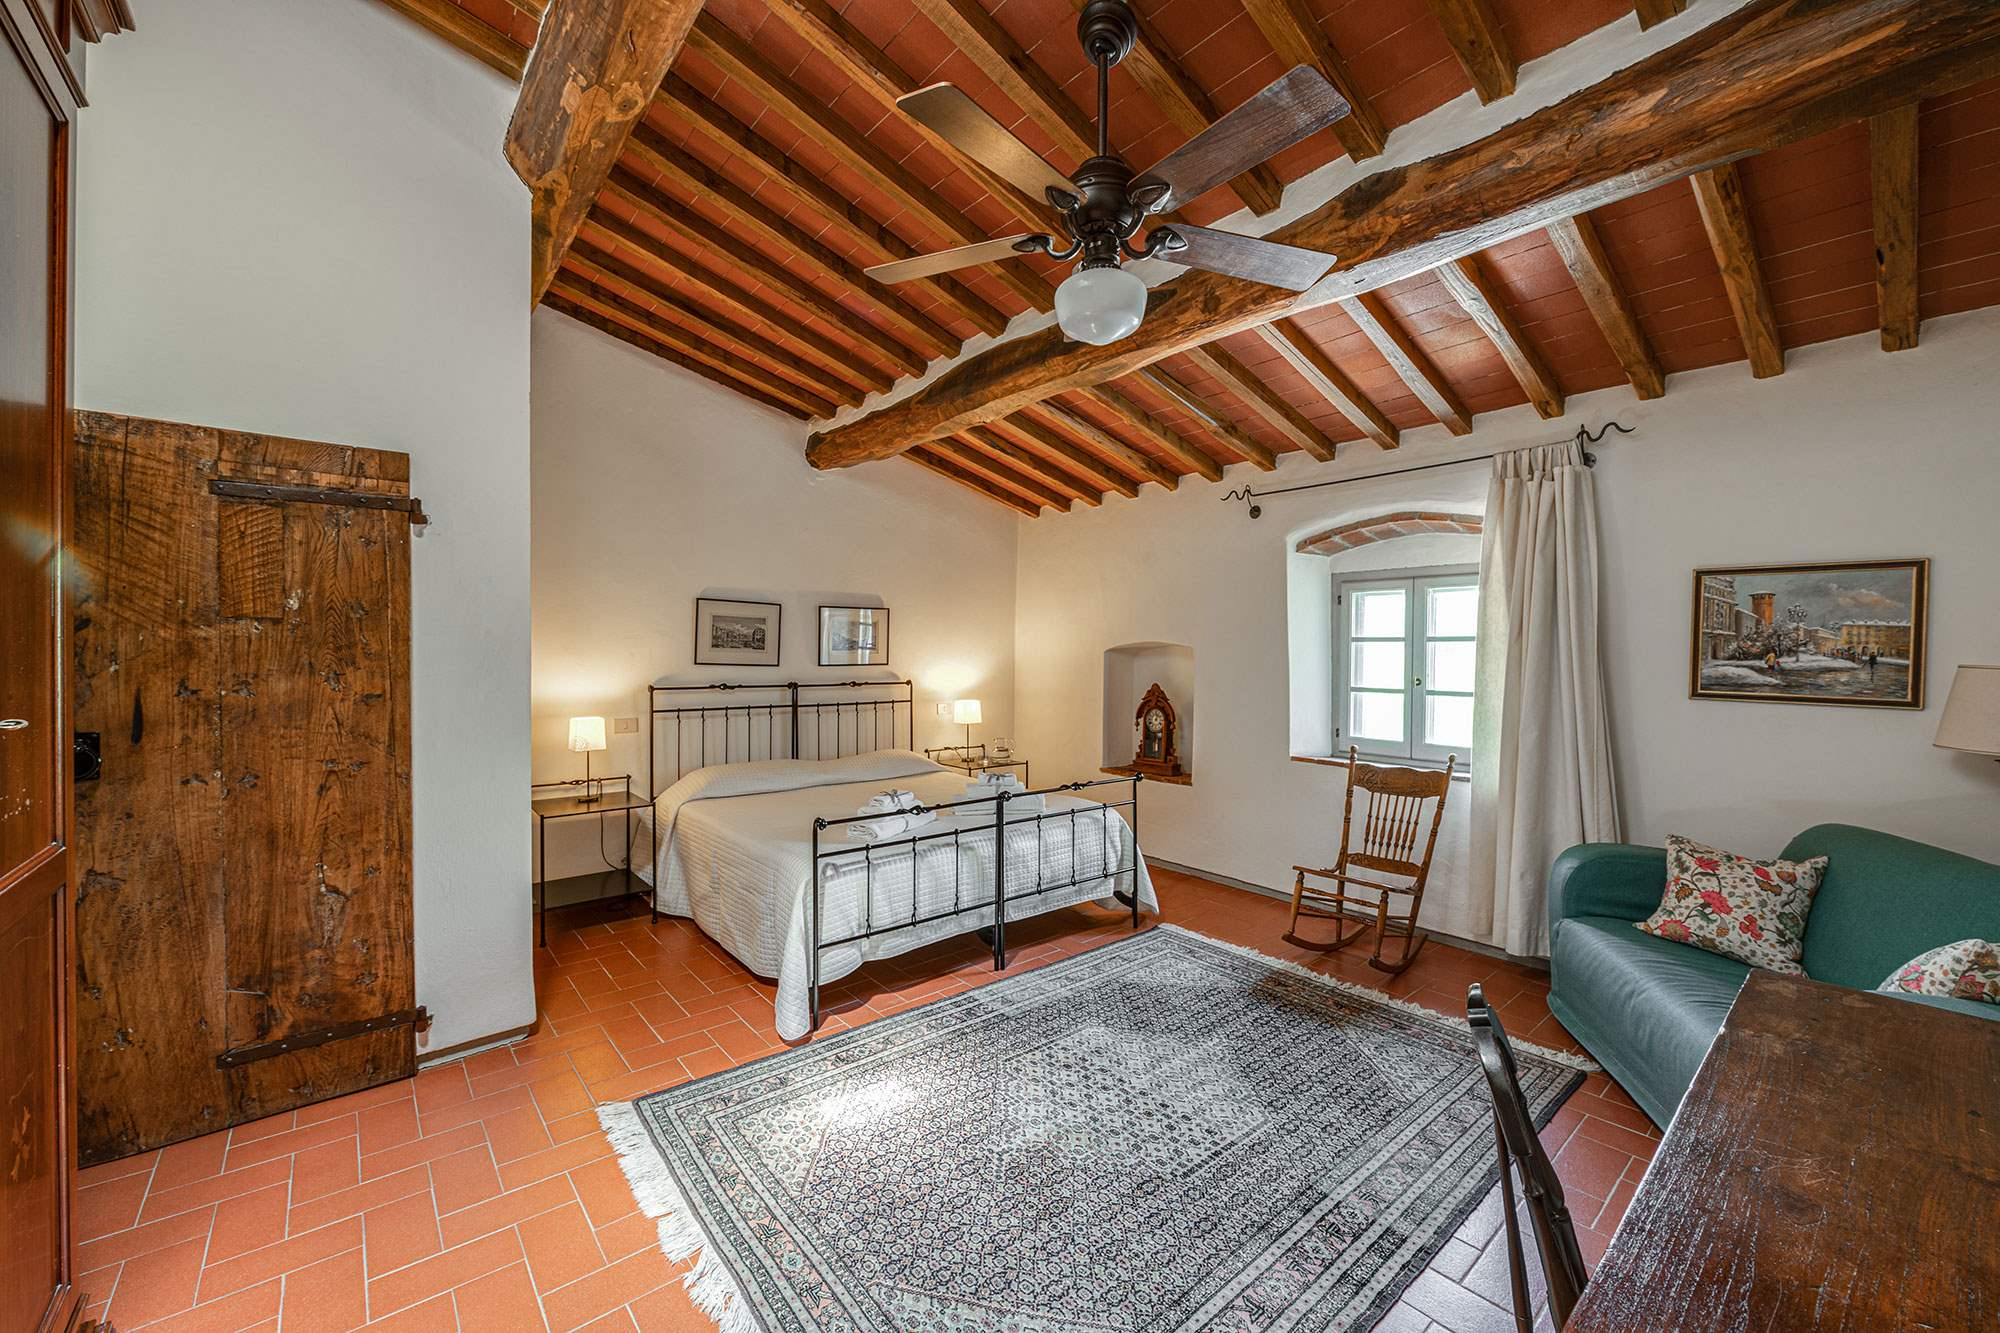 Villa Claudia, 5 Bedroom rate, 5 bedroom villa in Chianti & Countryside, Tuscany Photo #22